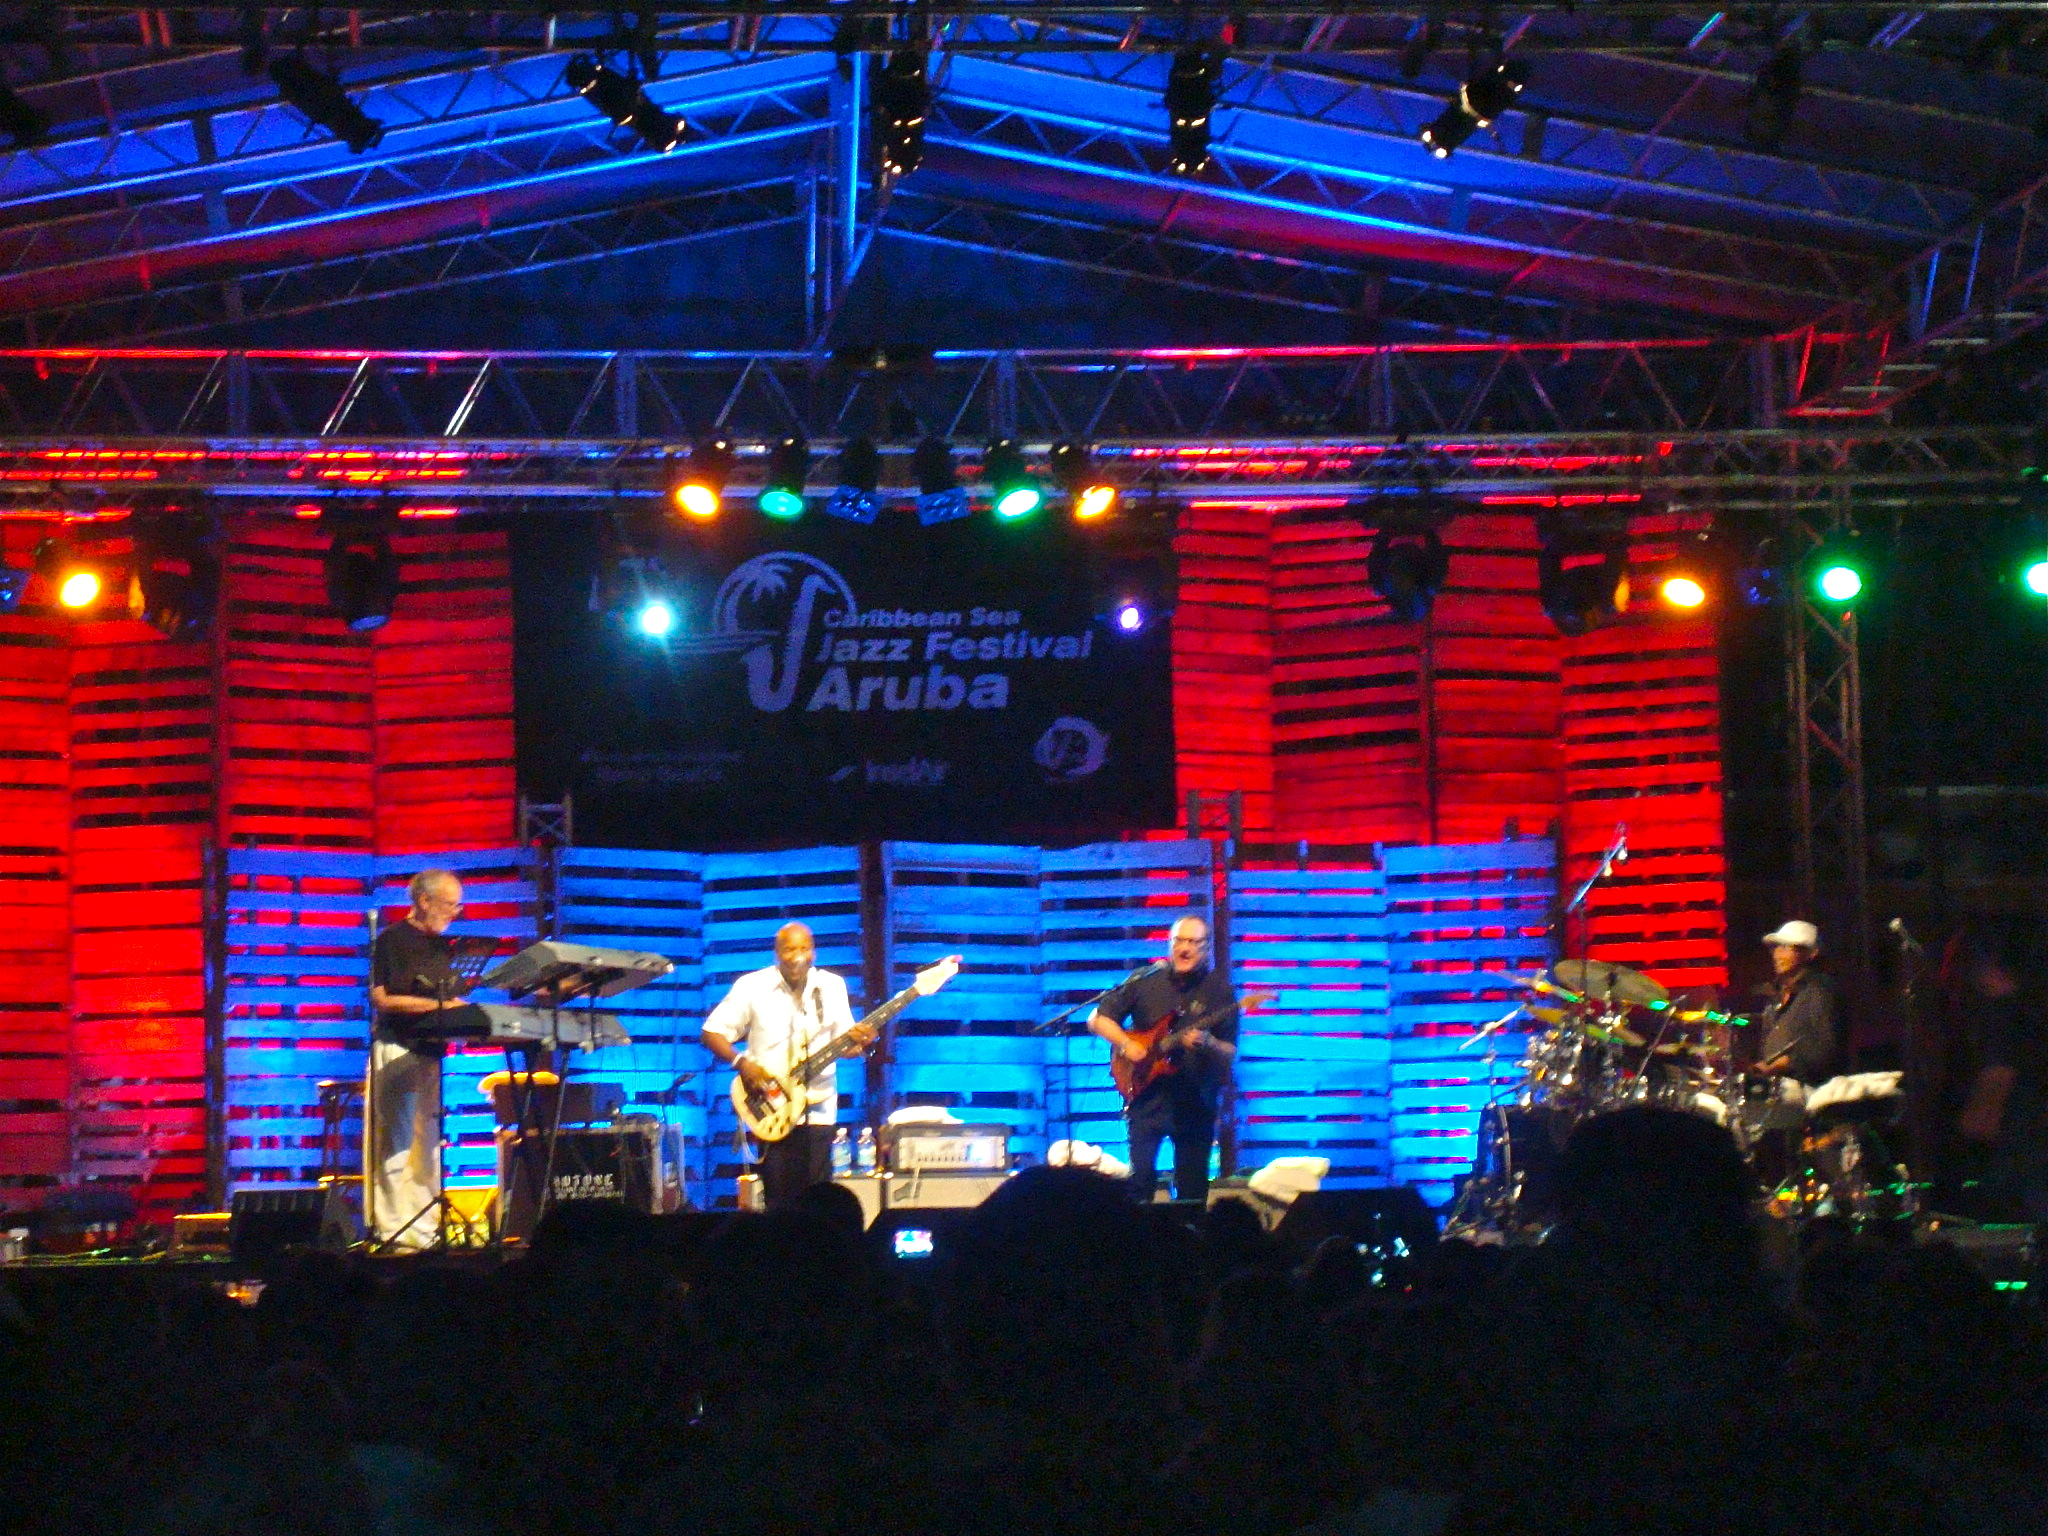 Fourplay @ the Caribbean Sea Jazz Festival in Aruba « Fourplay